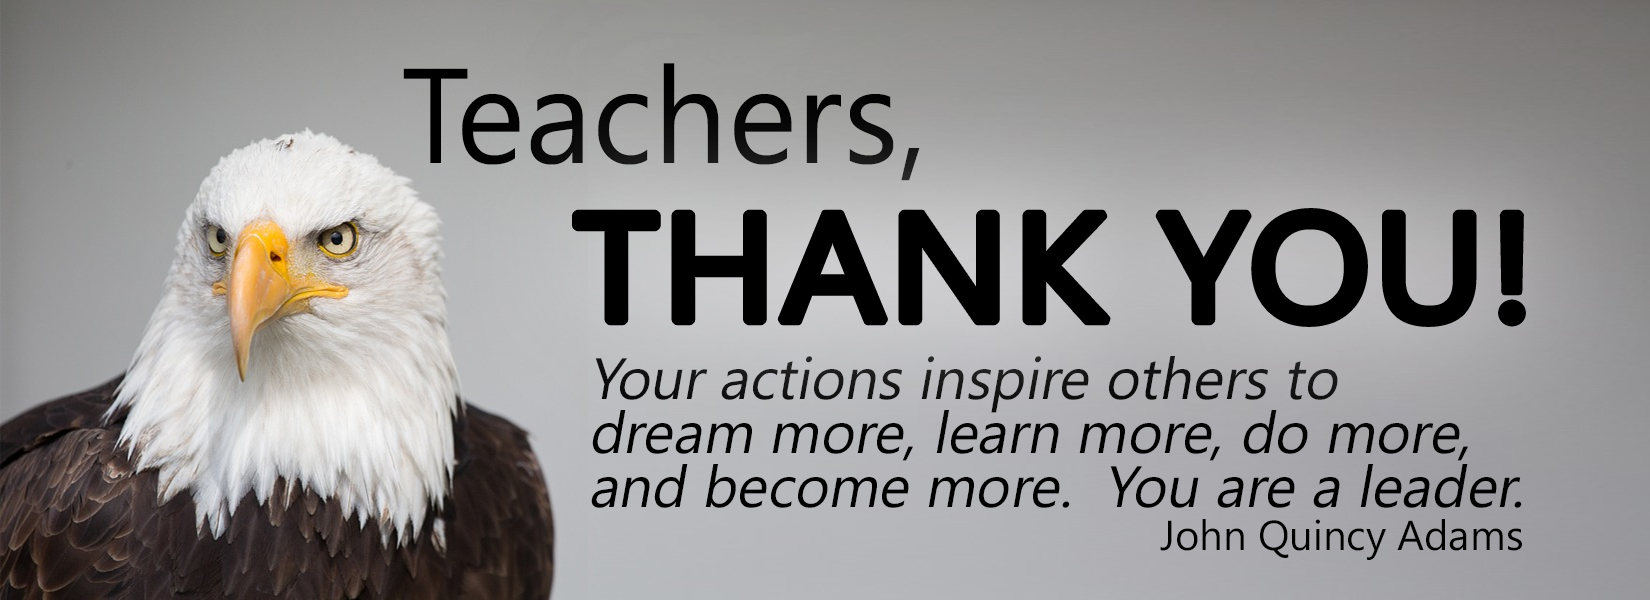 Thank-You-Teachers-1